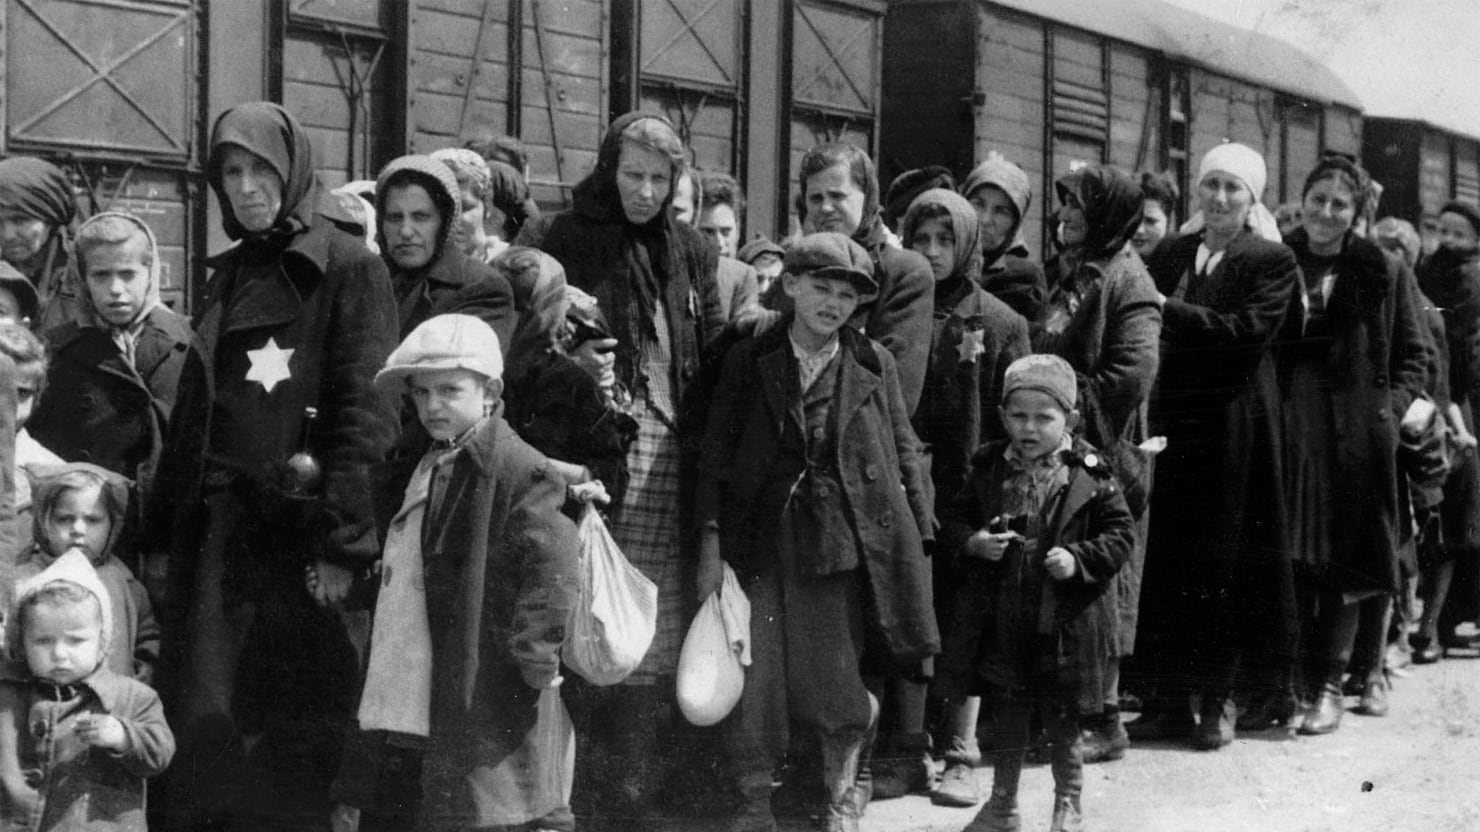 an overview of the lodz ghetto in europe during the world war two in poland Shows the efforts of german-appointed leader chaim rumkowski to save the jewish community during the nazi occupation of lodz, poland, in world war ii documents rumkowski's establishment of an entire society, including schools, industries, and a postal system.